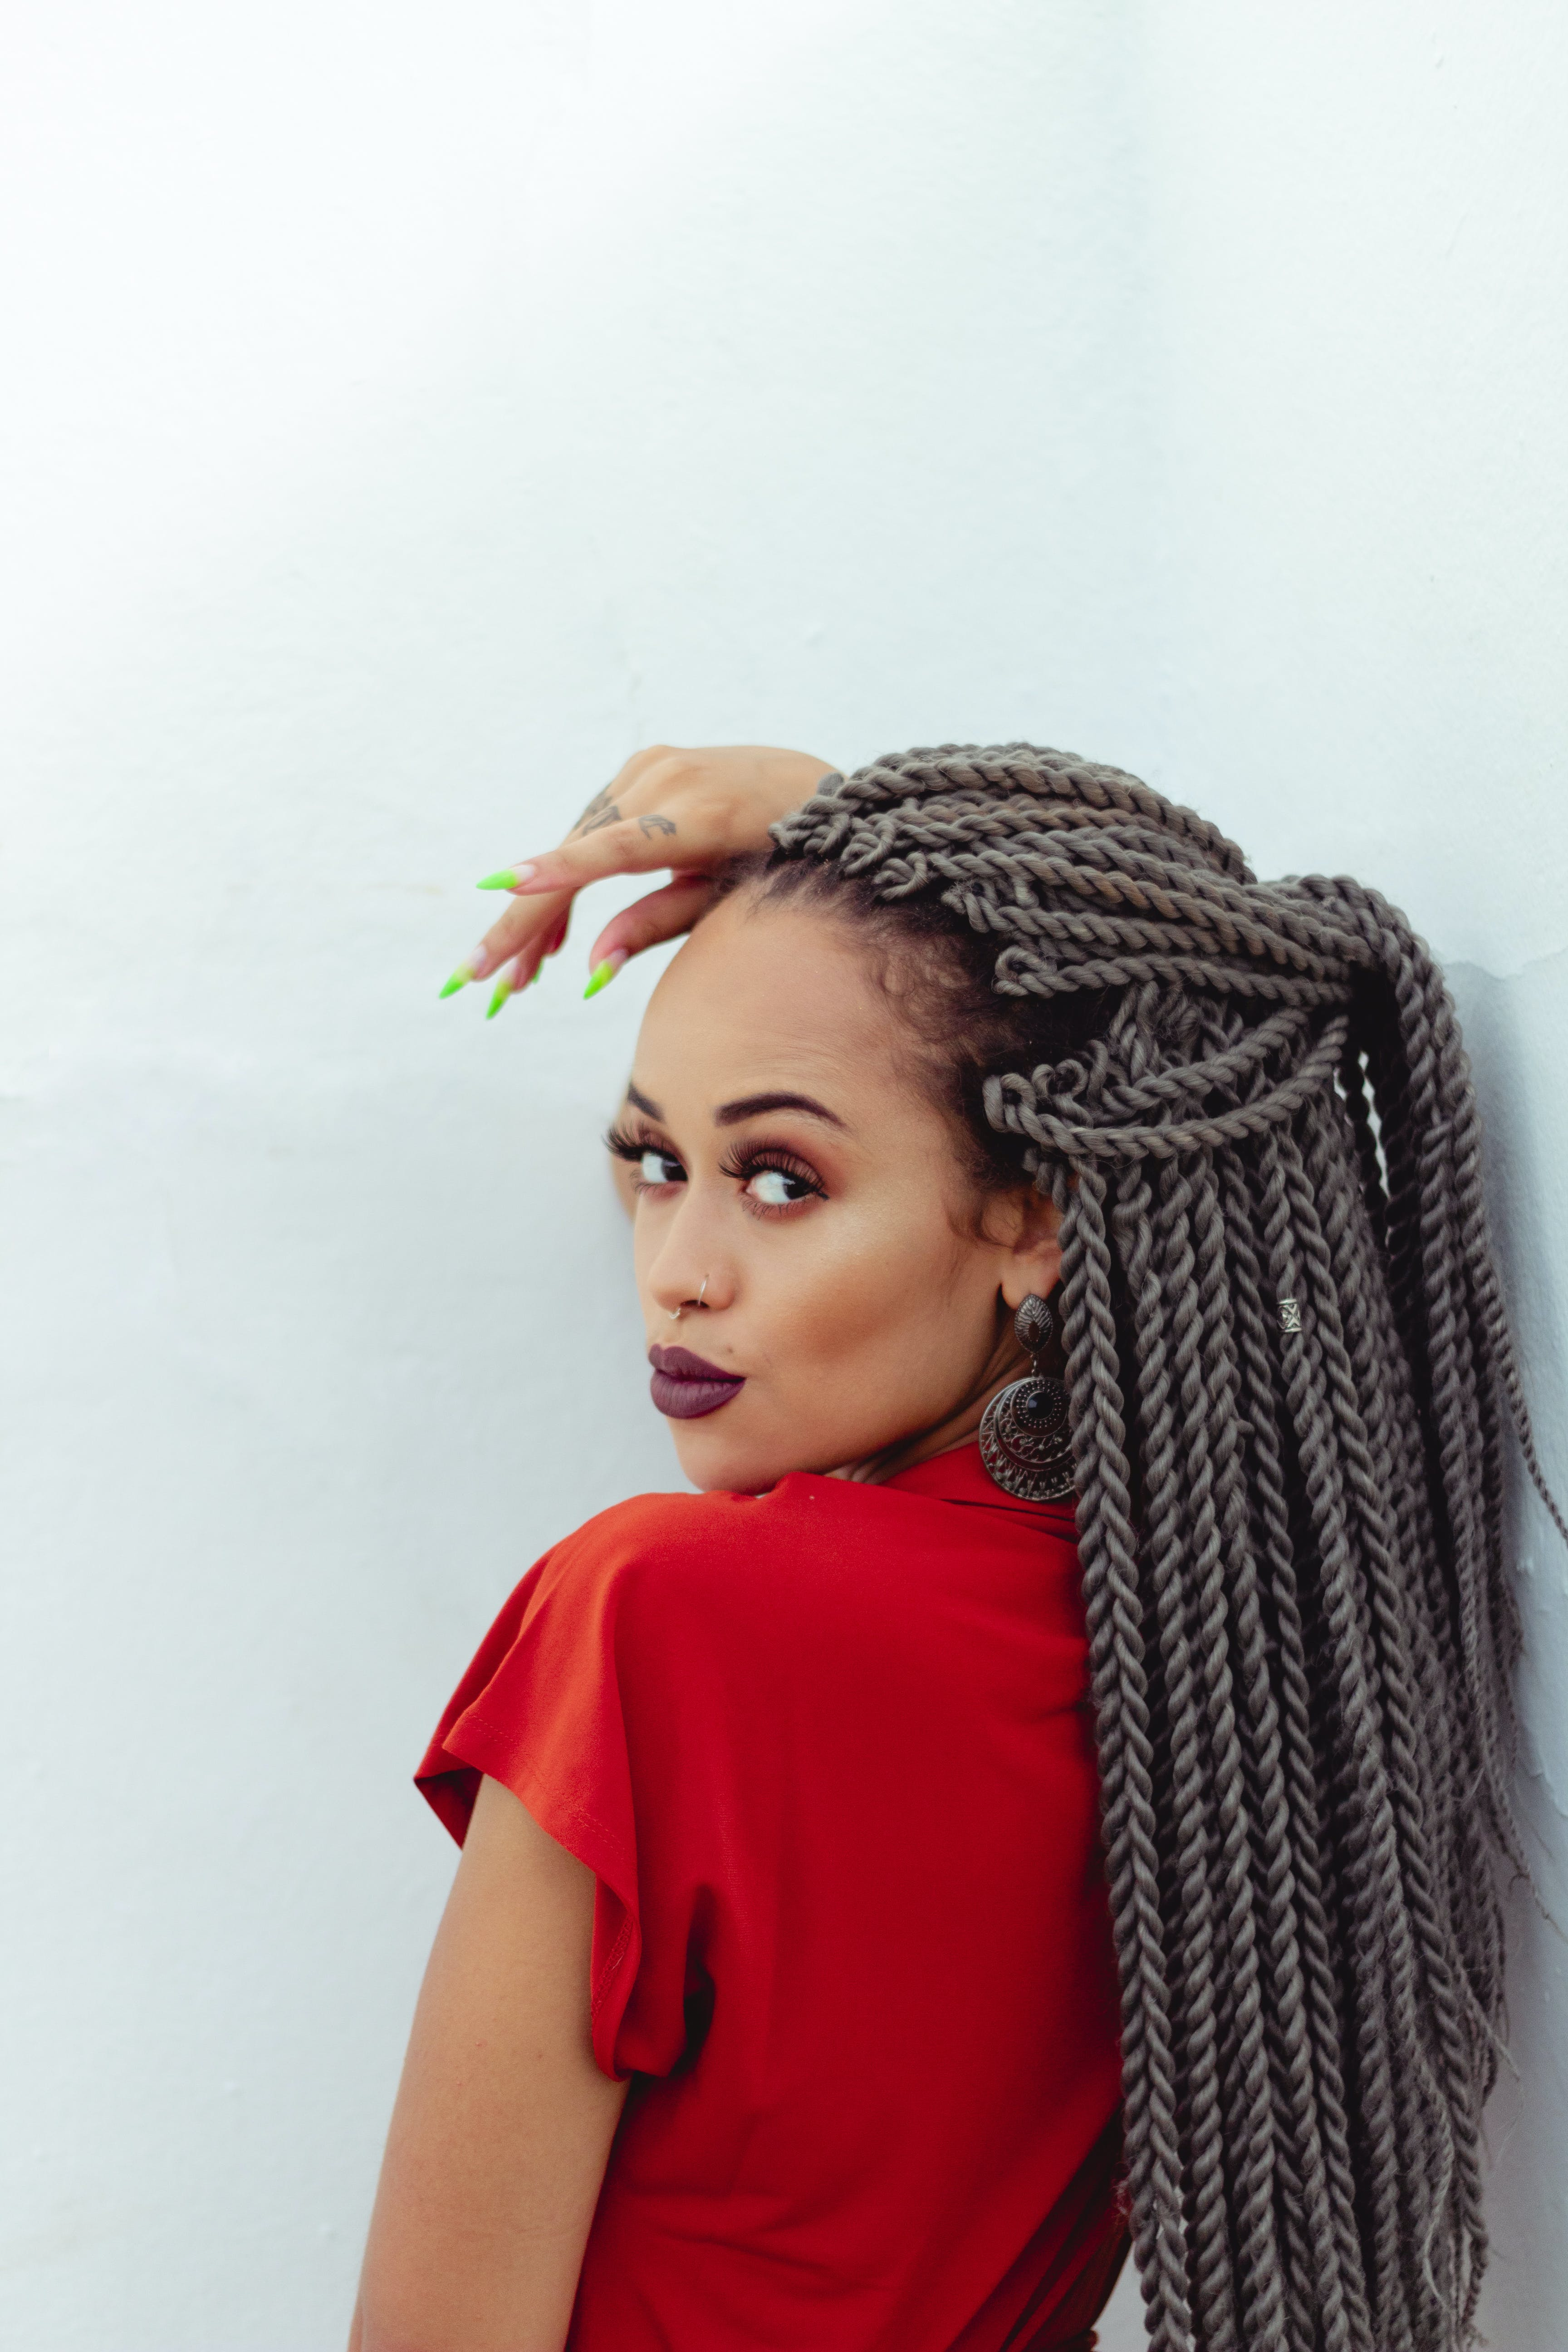 Woman In Red Top With Braided Hair Leaning On White Wall